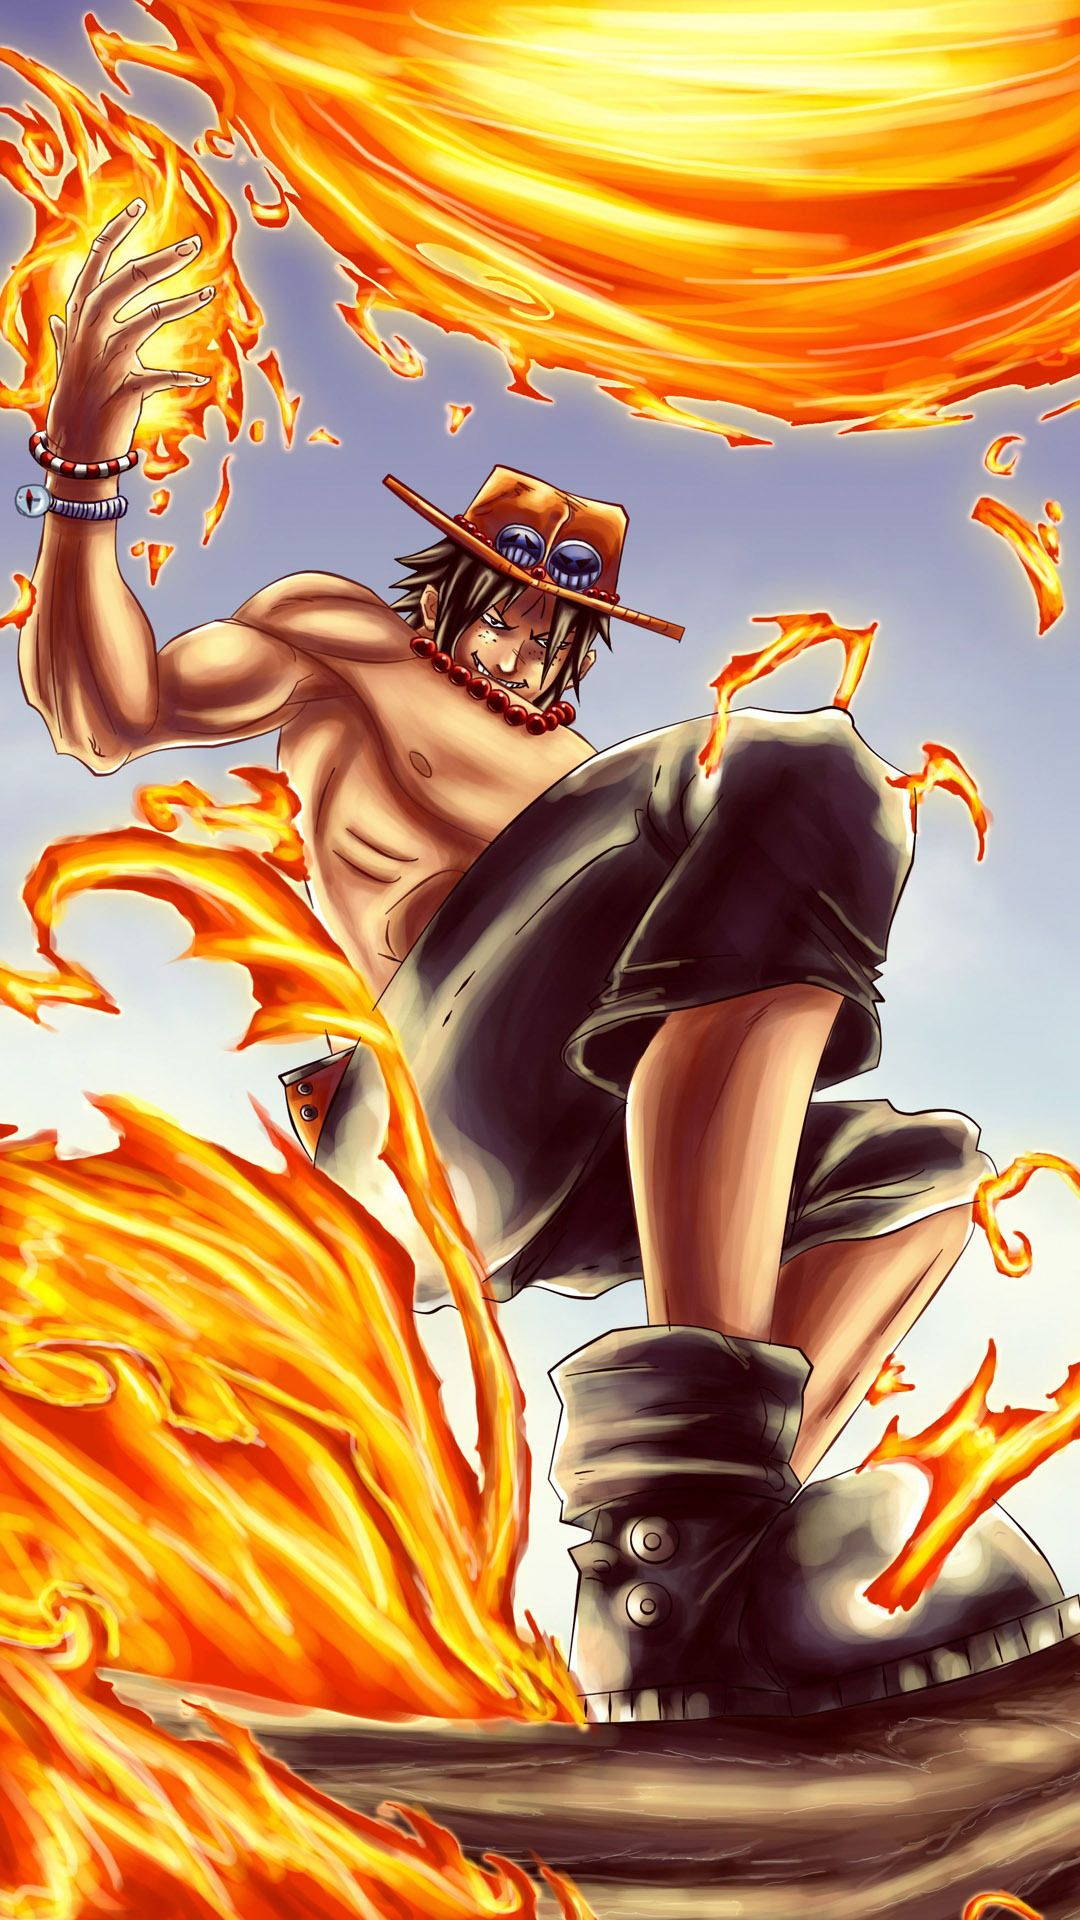 portgas d ace one piece mobile wallpaper 9609 one piece